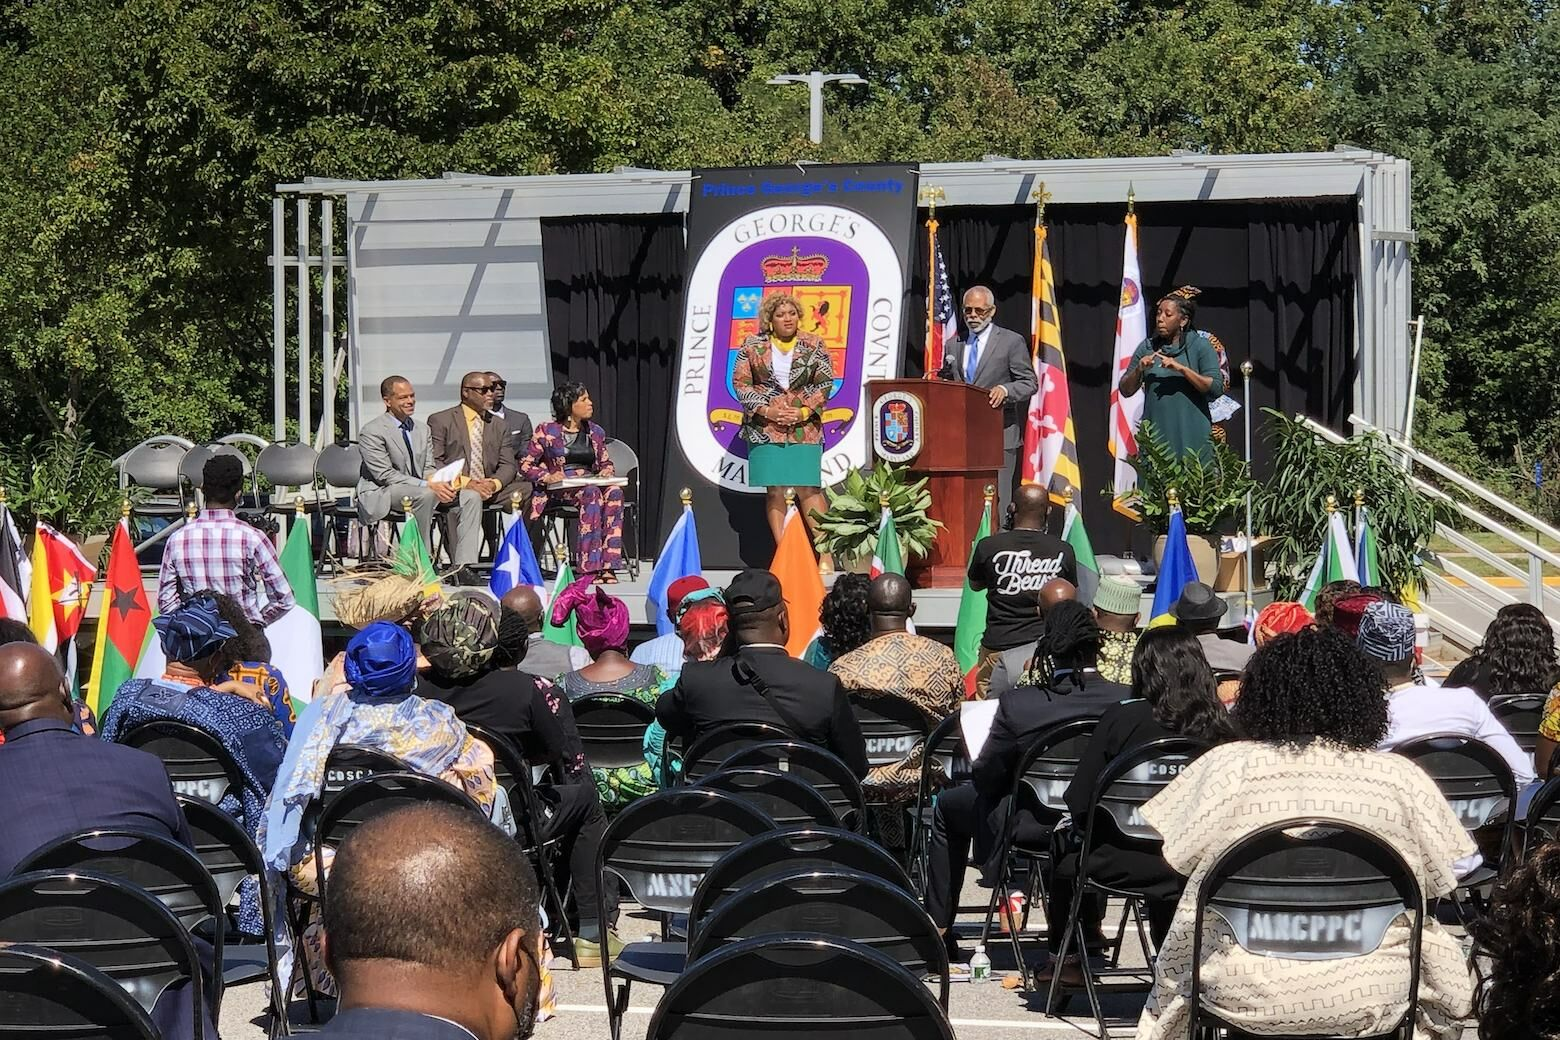 Prince George's County officially celebrates September as African Heritage Month